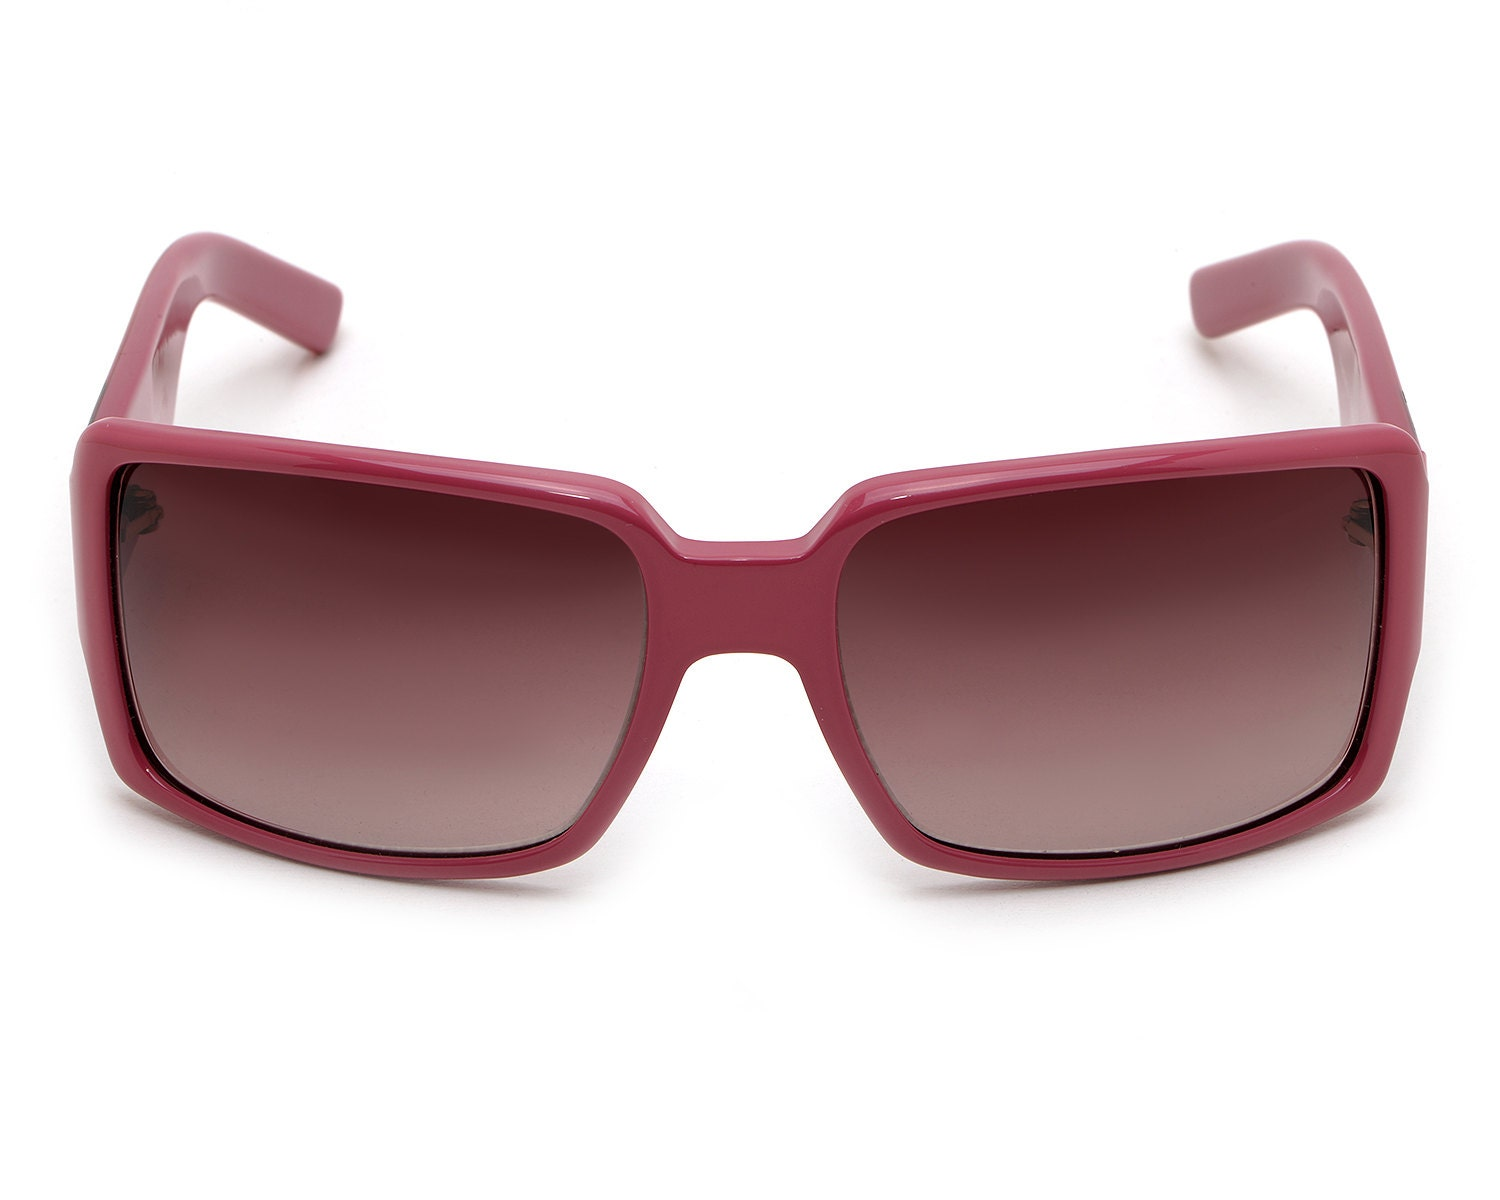 Gucci Sunglasses GG 2563/S Pink Z8M 60-17-120 Made in Italy